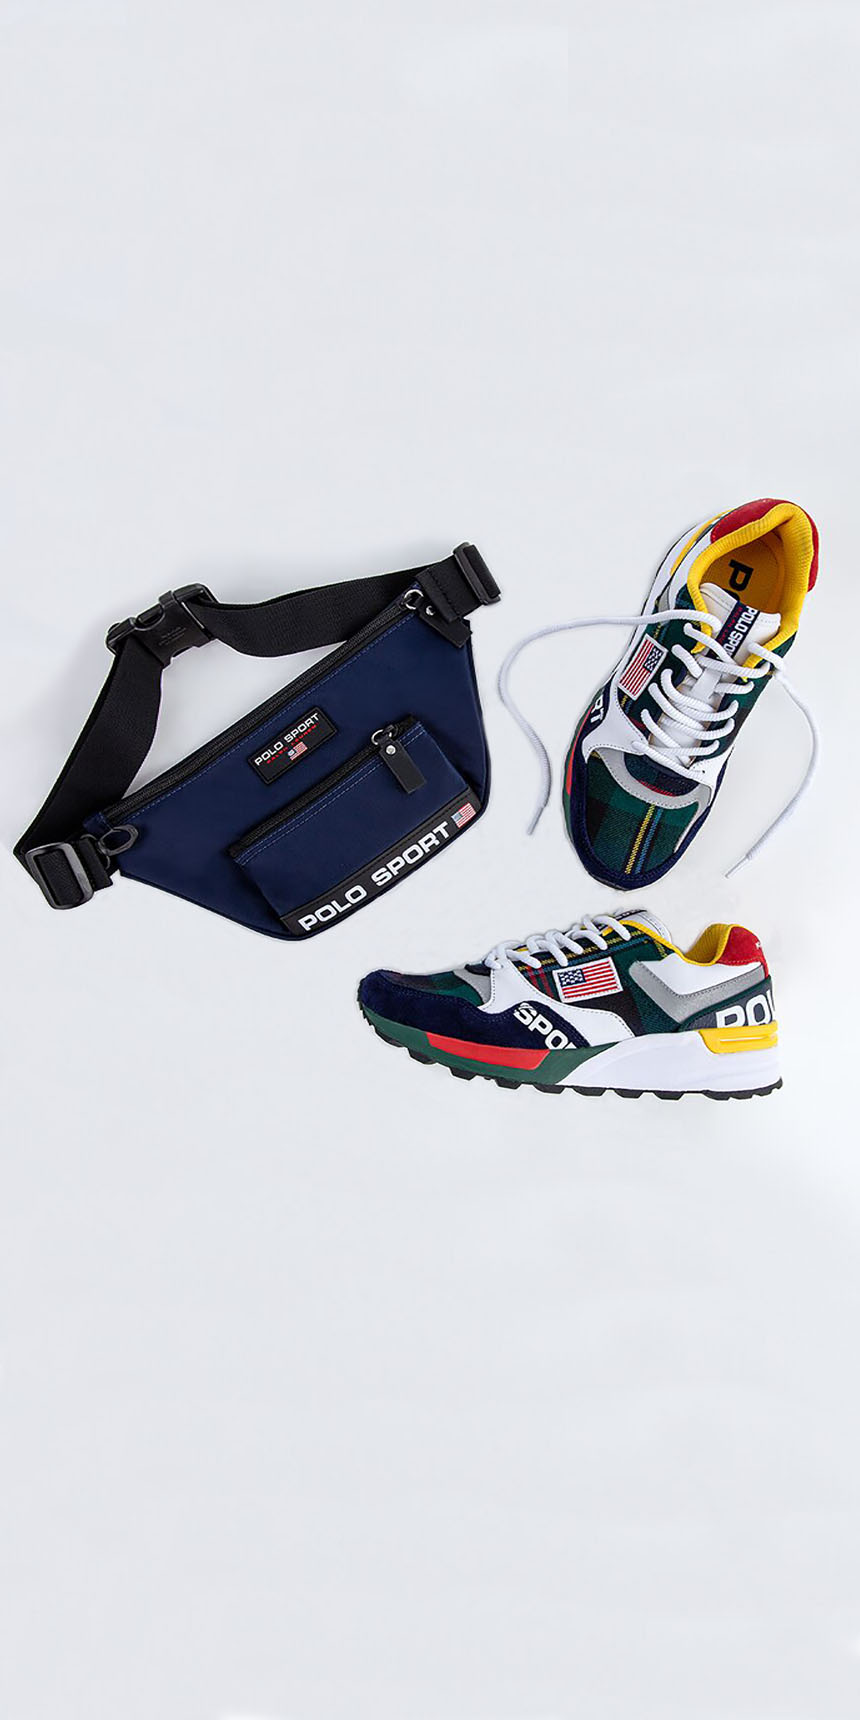 Relaunched Polo Sport Collection Inspires '90s Nostalgia